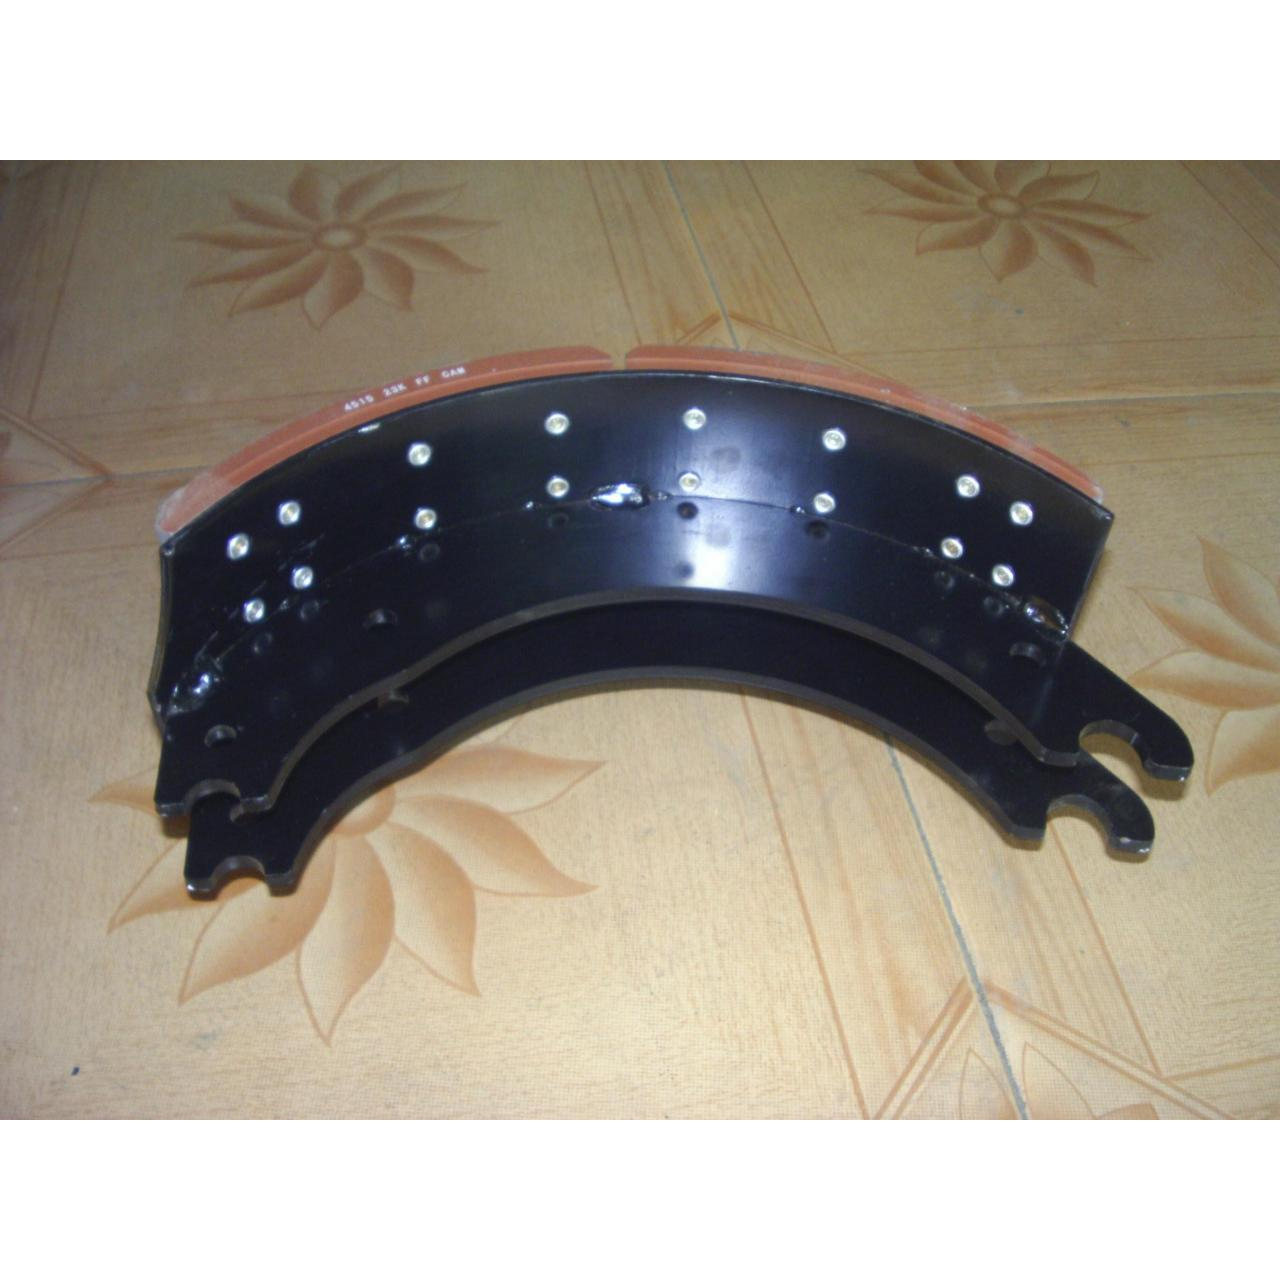 clutches brakes 4707 brake shoe